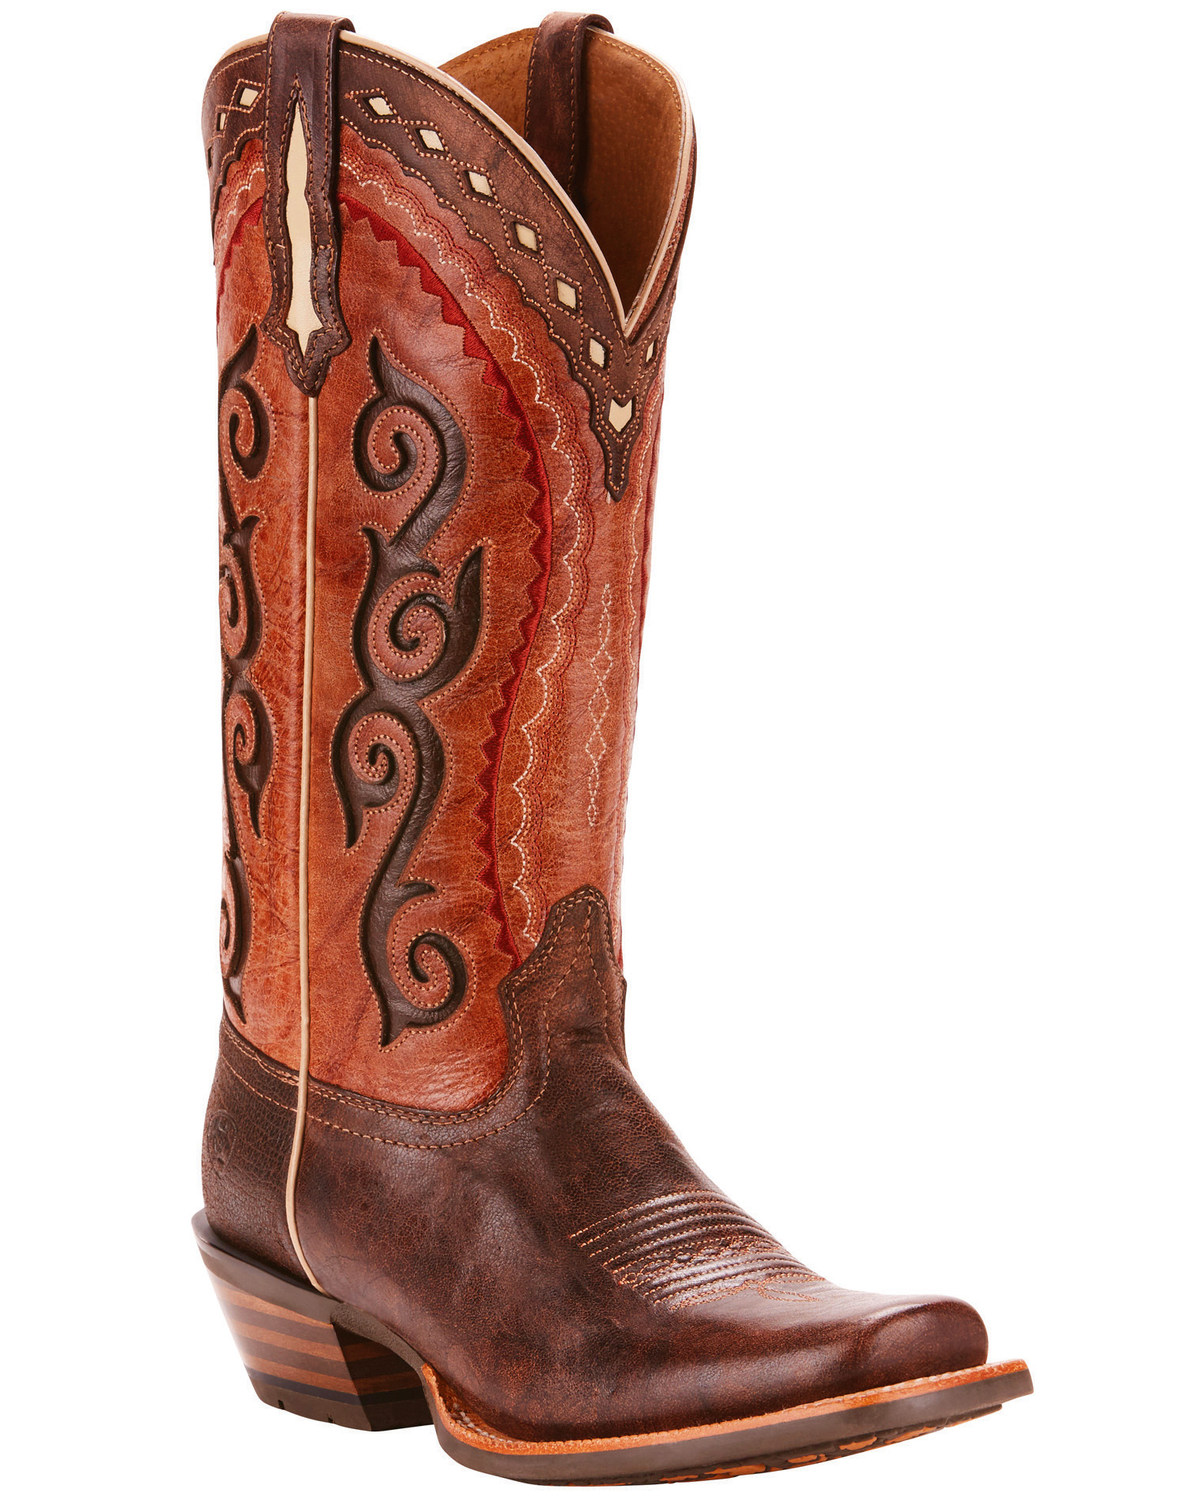 4cb36698efc Ariat Women's Cowtown Cutter Scroll Inlay Performance Cowgirl Boots -  Square Toe